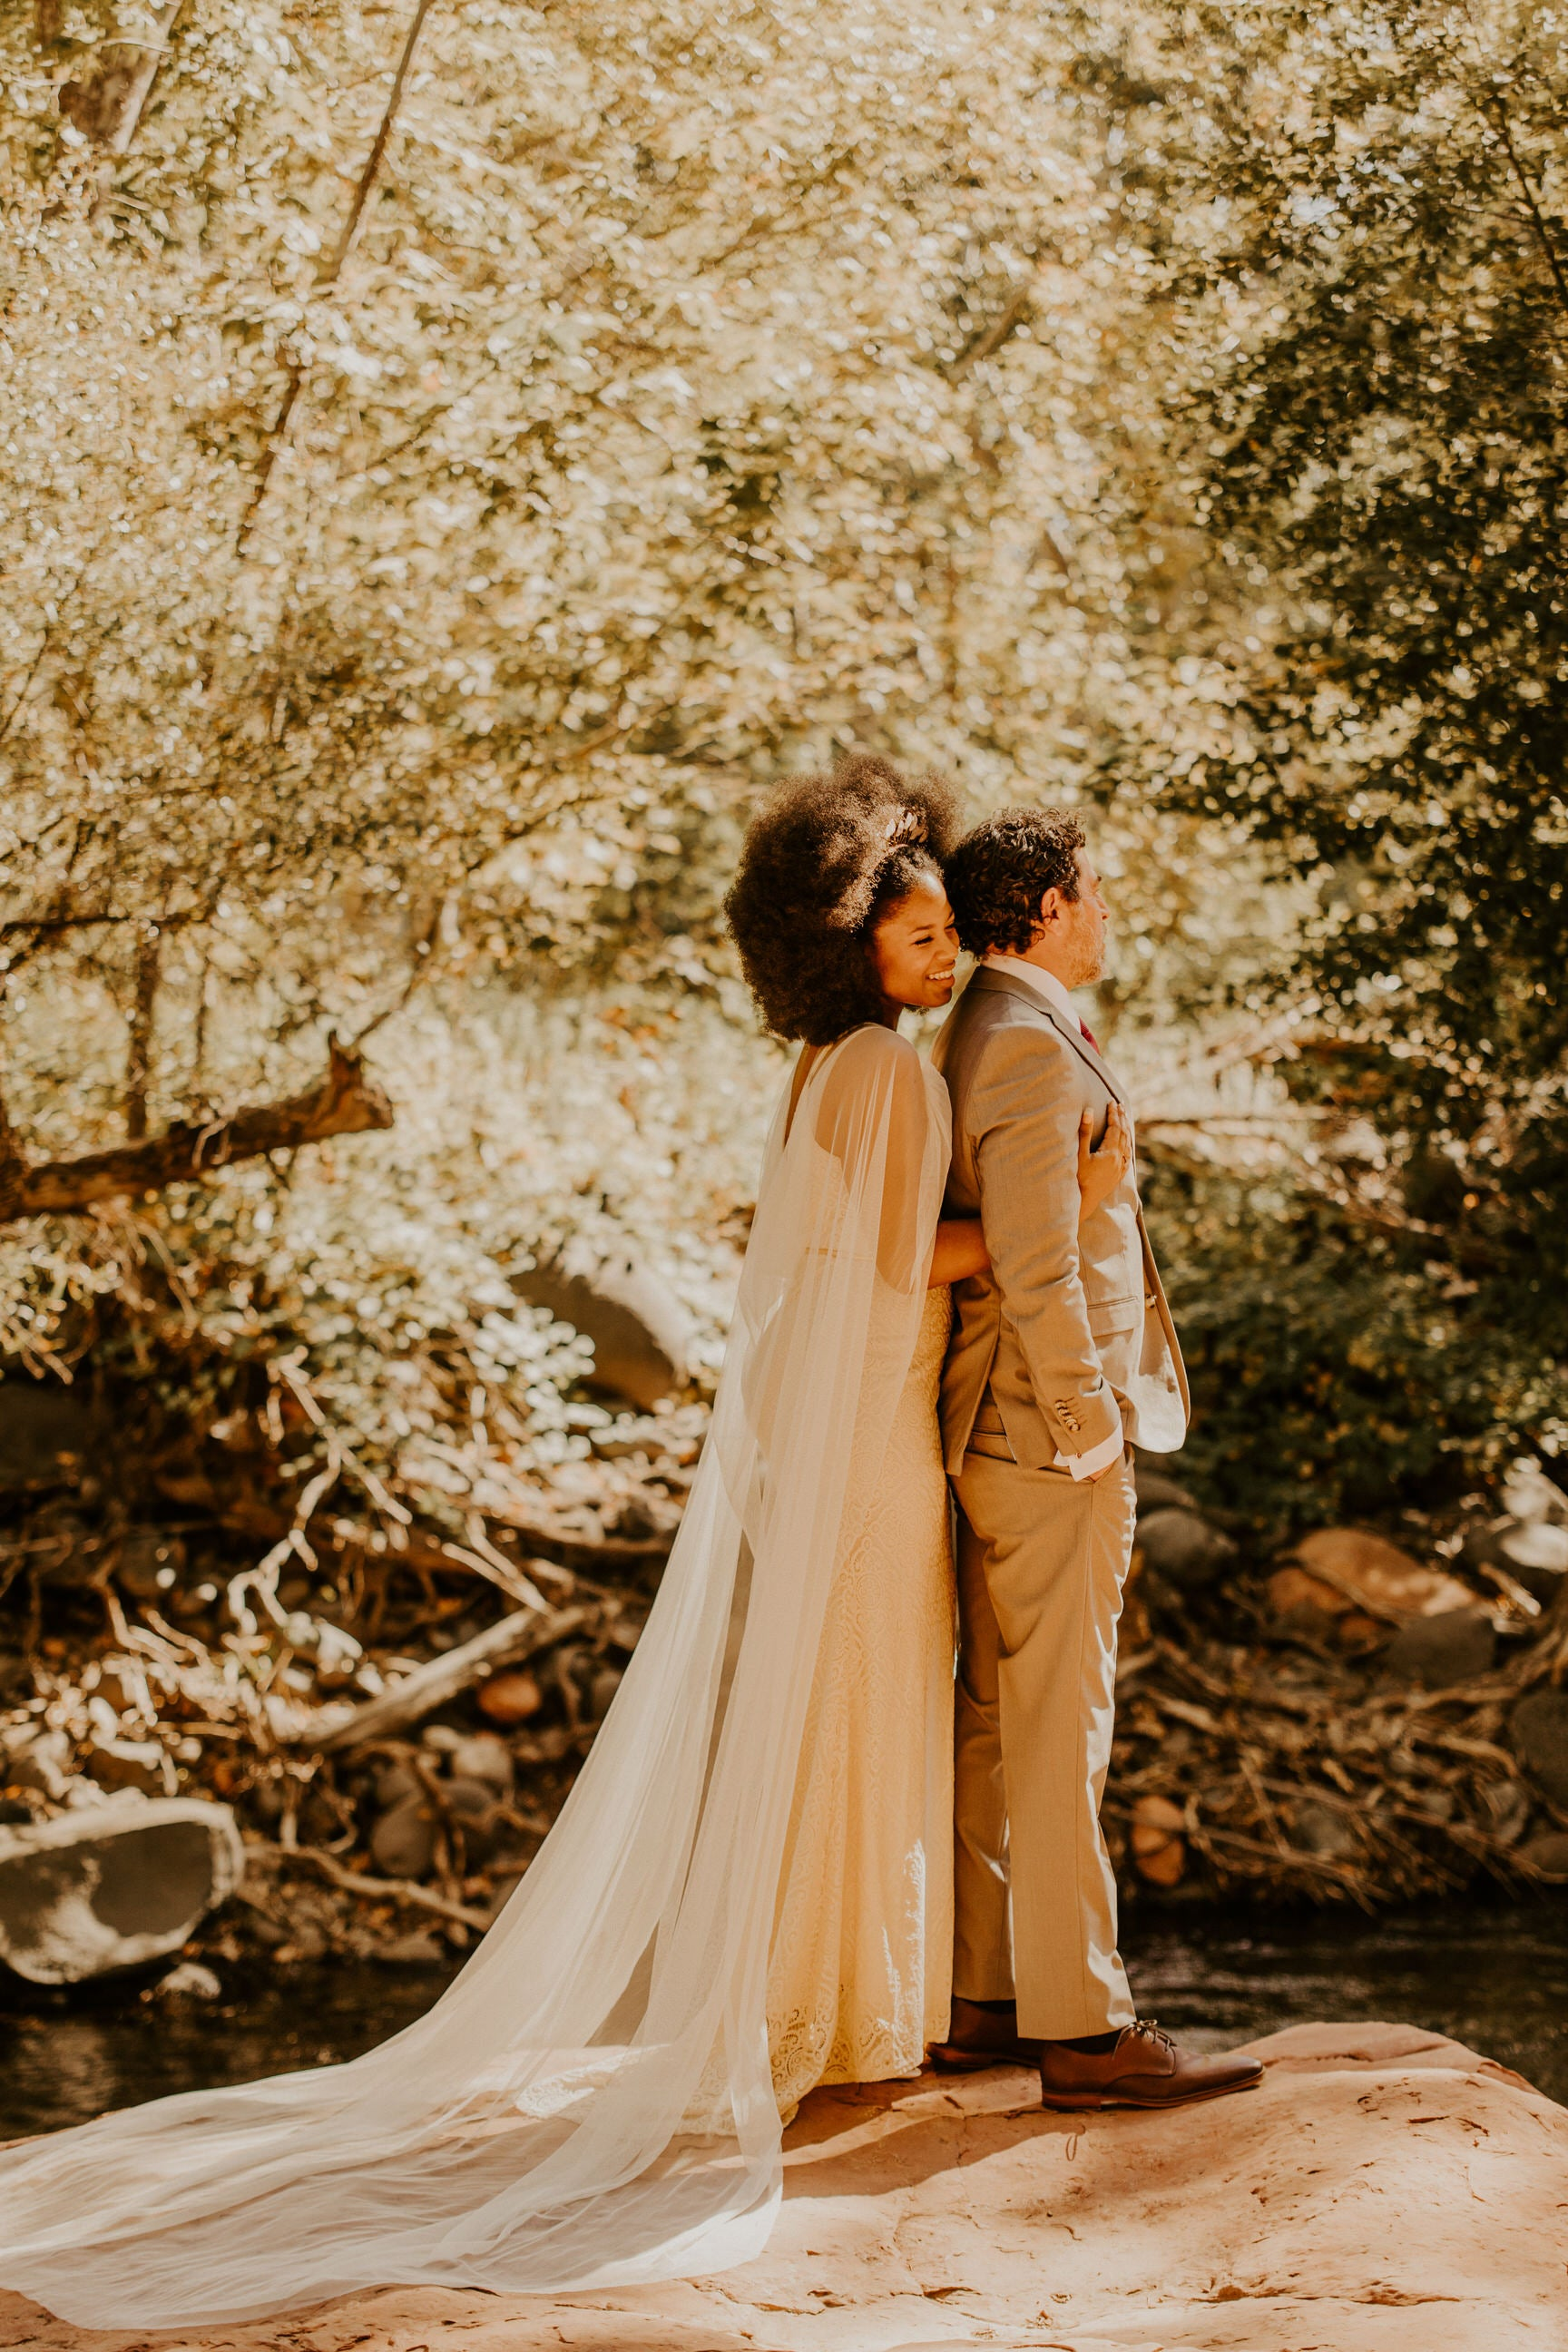 modern elopement wedding with bride in long wedding dress wrap